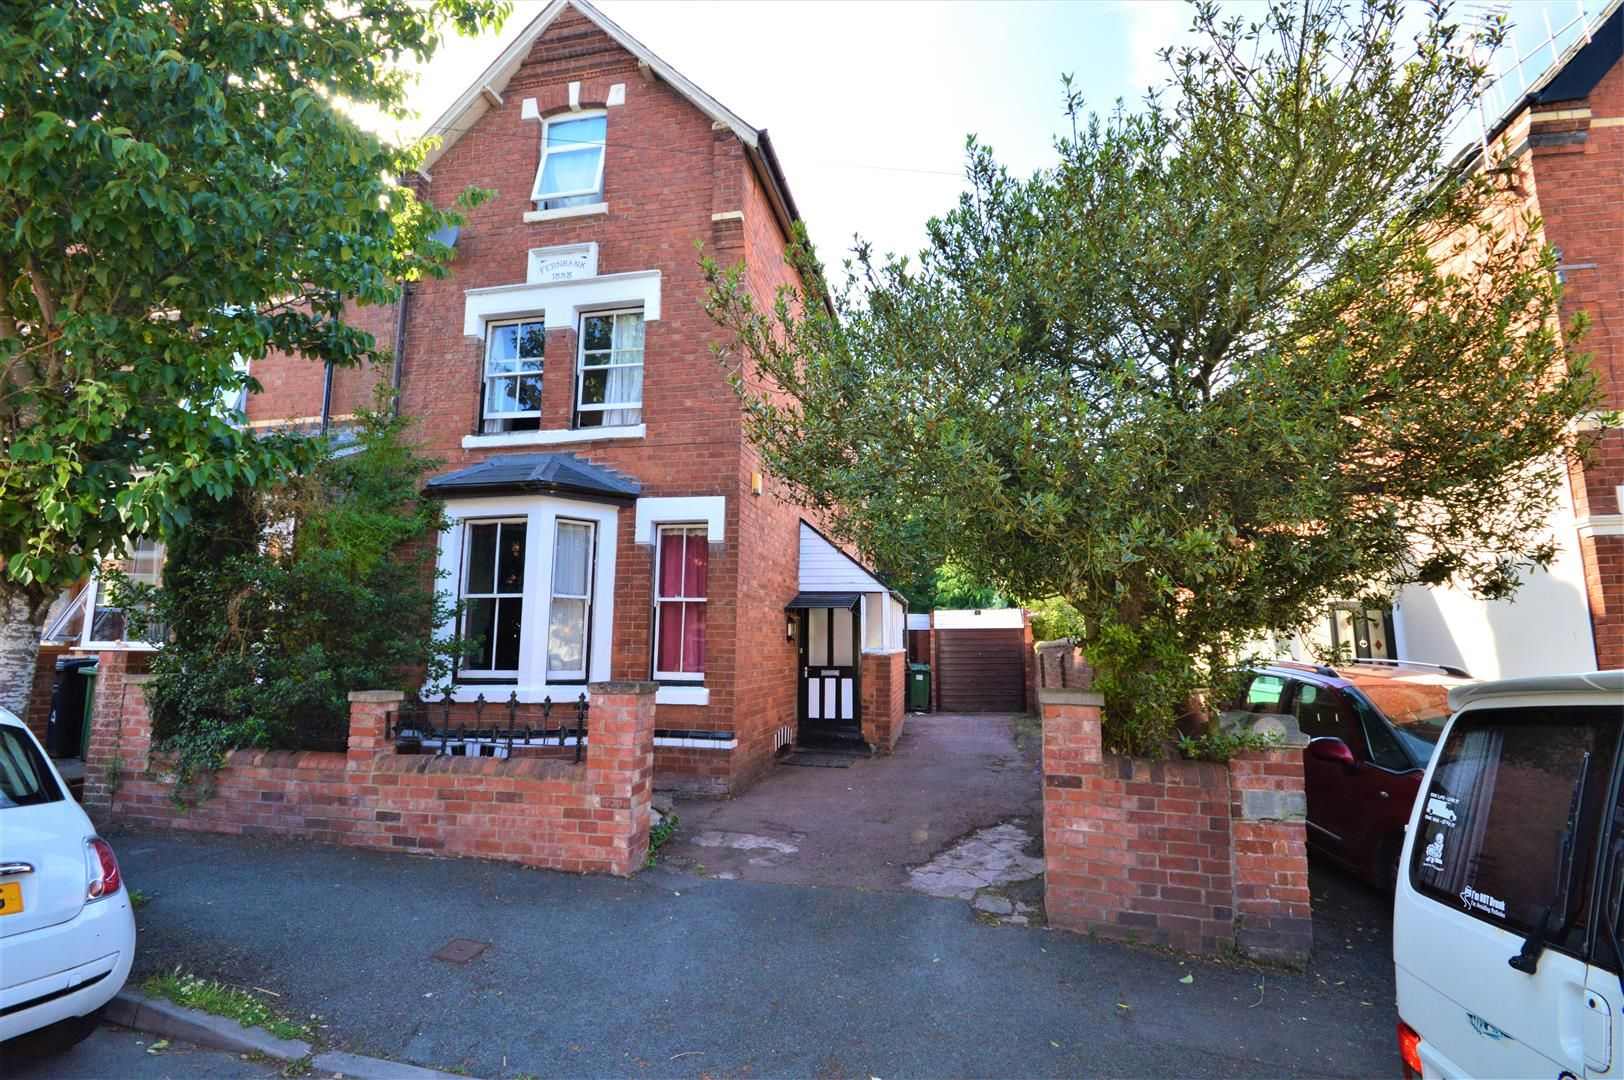 4 bed end-of-terrace for sale, HR4